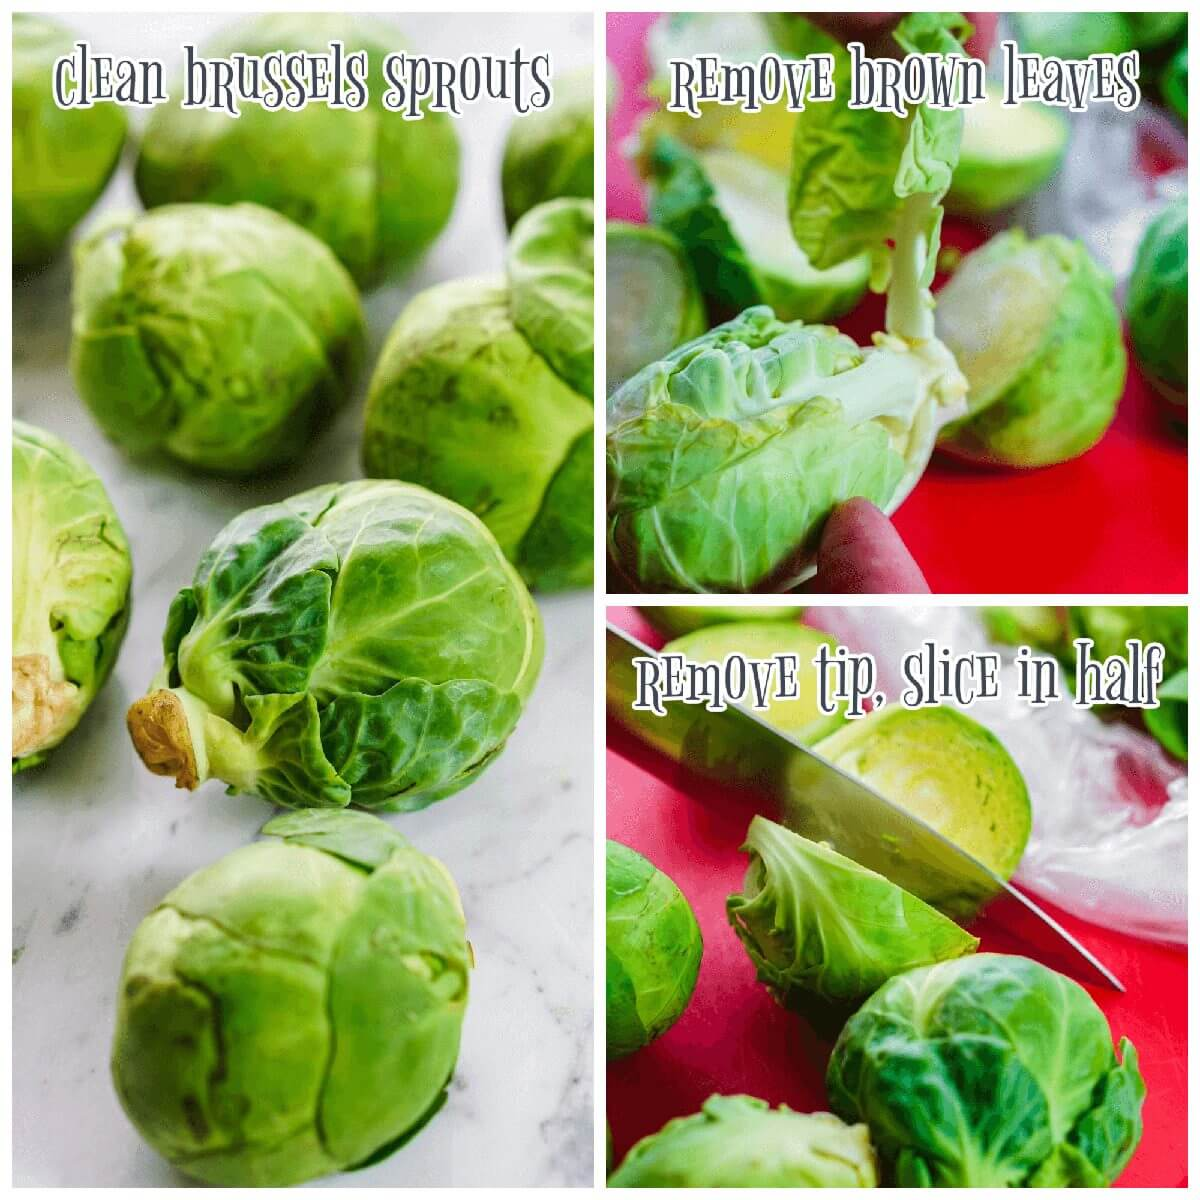 Collage with images showing how to clean Brussels sprouts